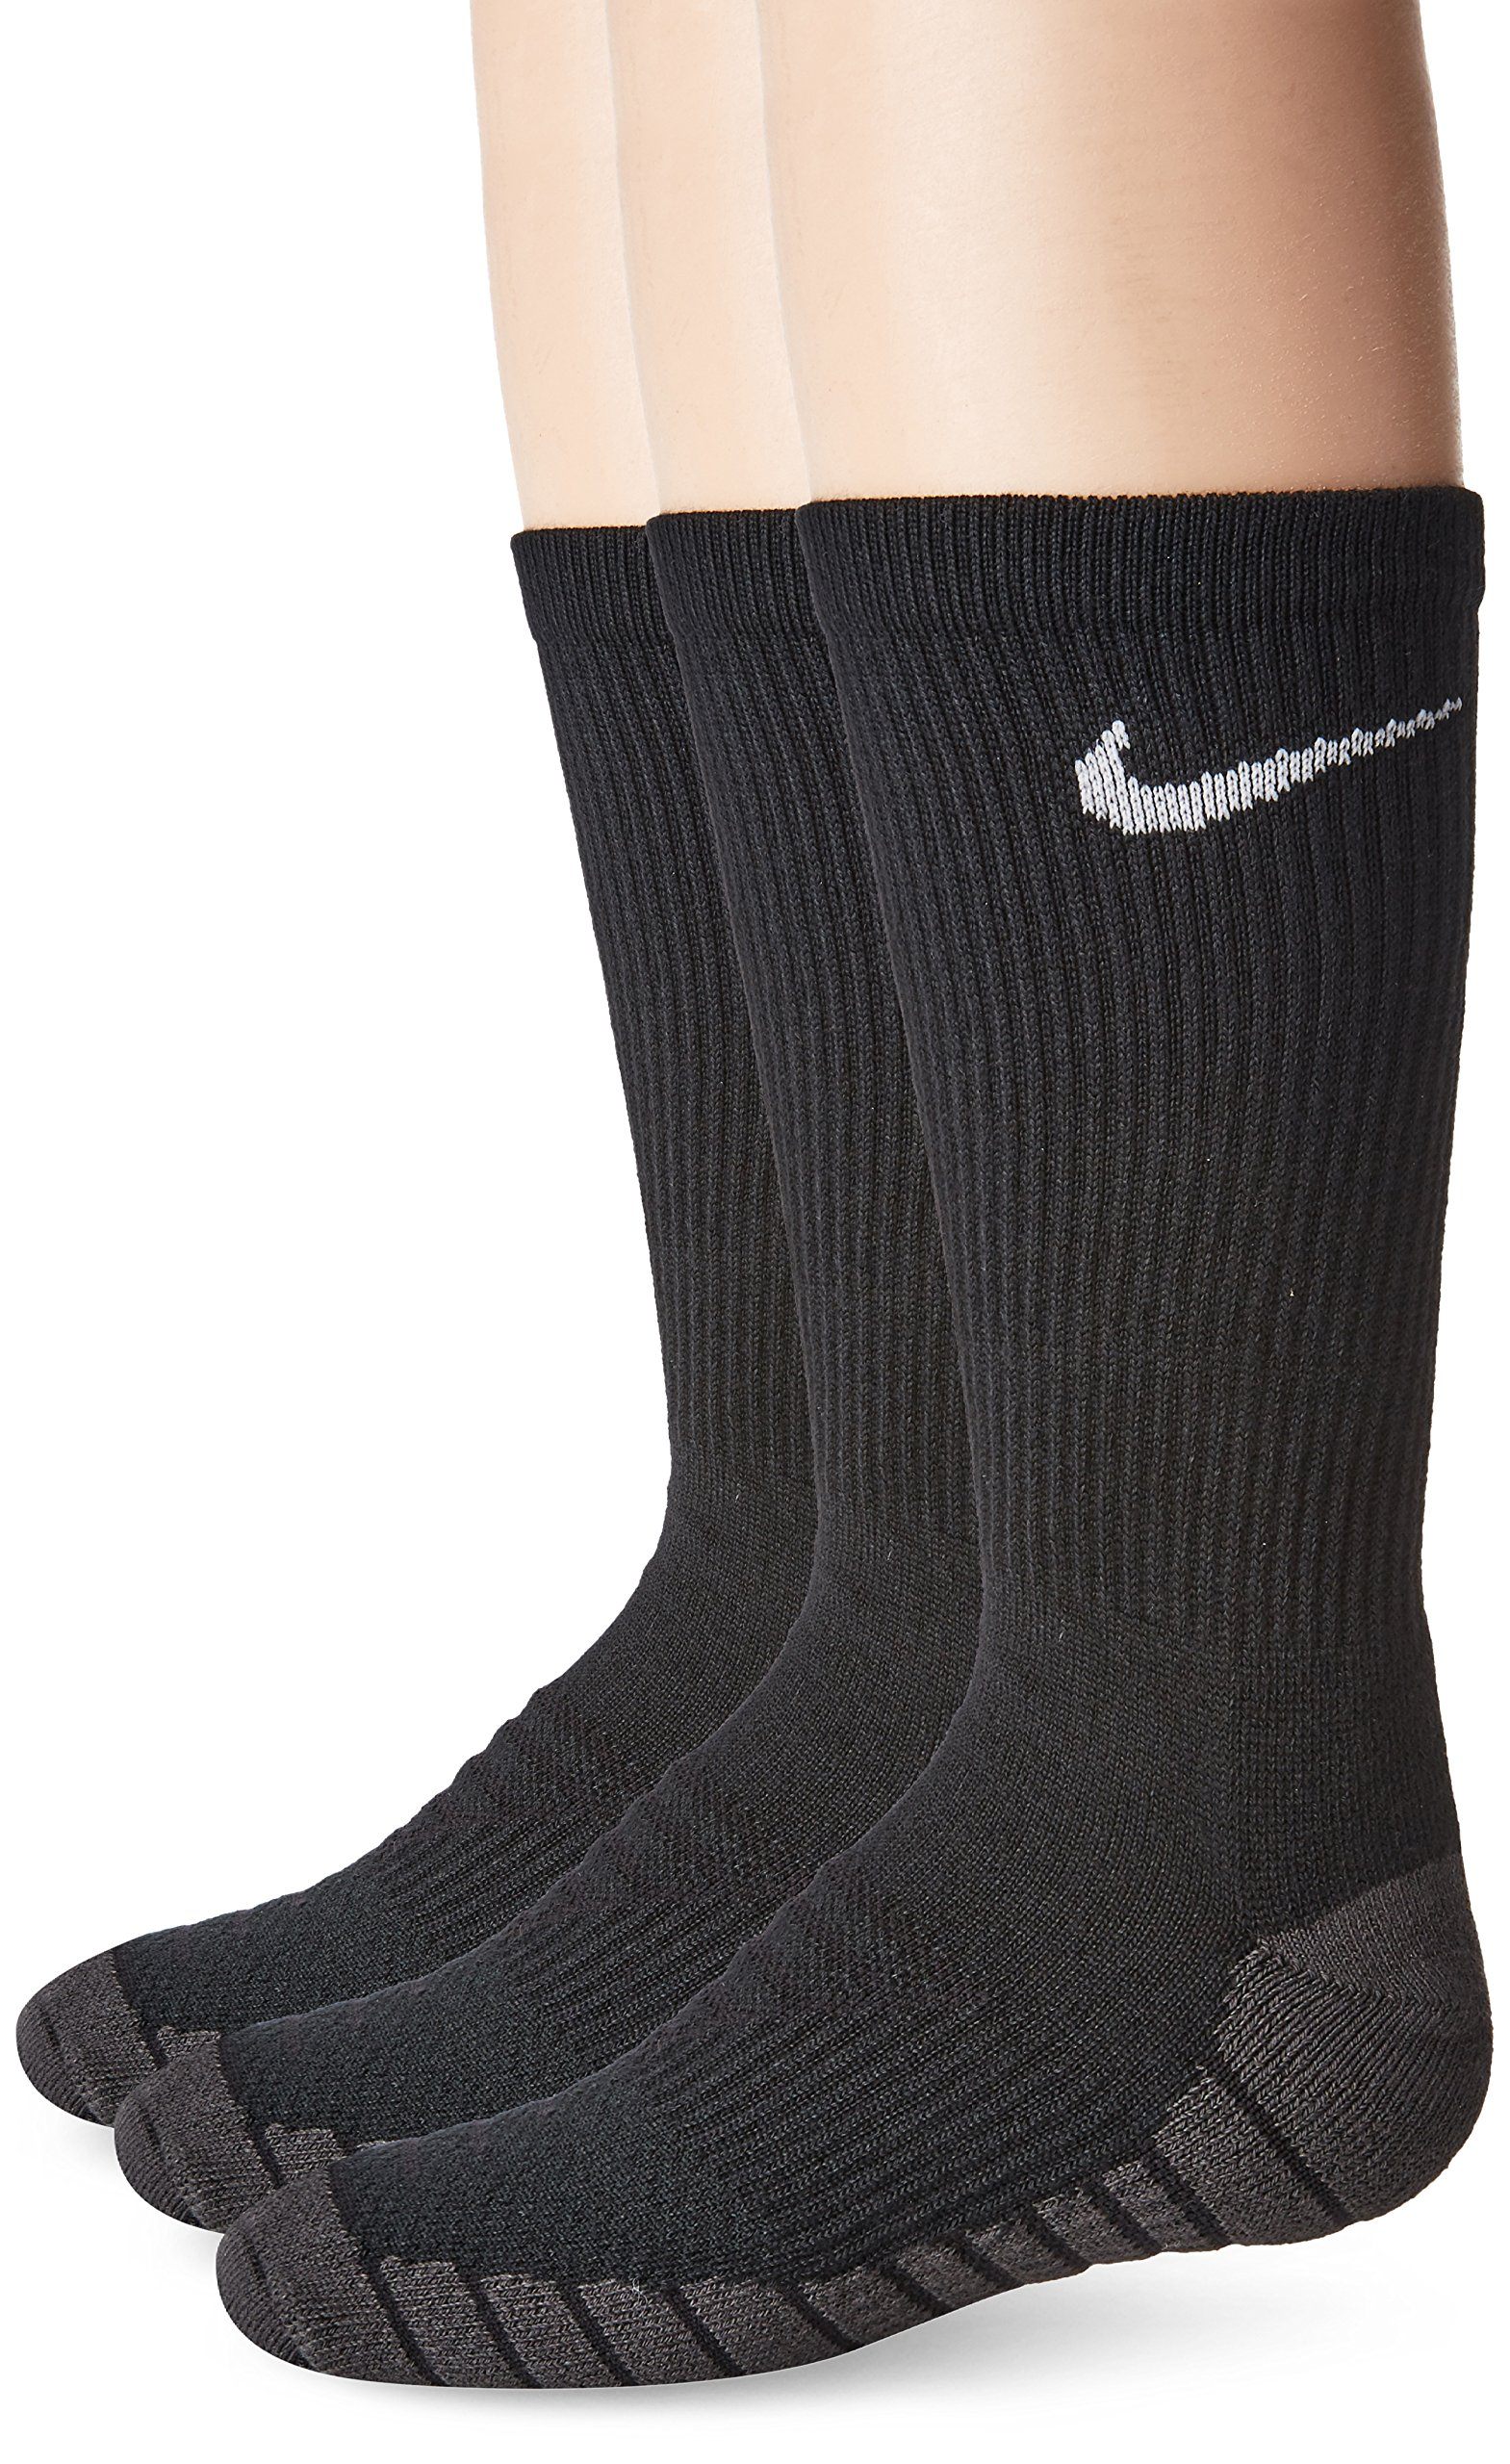 NIKE Kids' Unisex Everyday Max Cushion Crew Socks (3 Pairs), Black/Anthracite/White, Medium